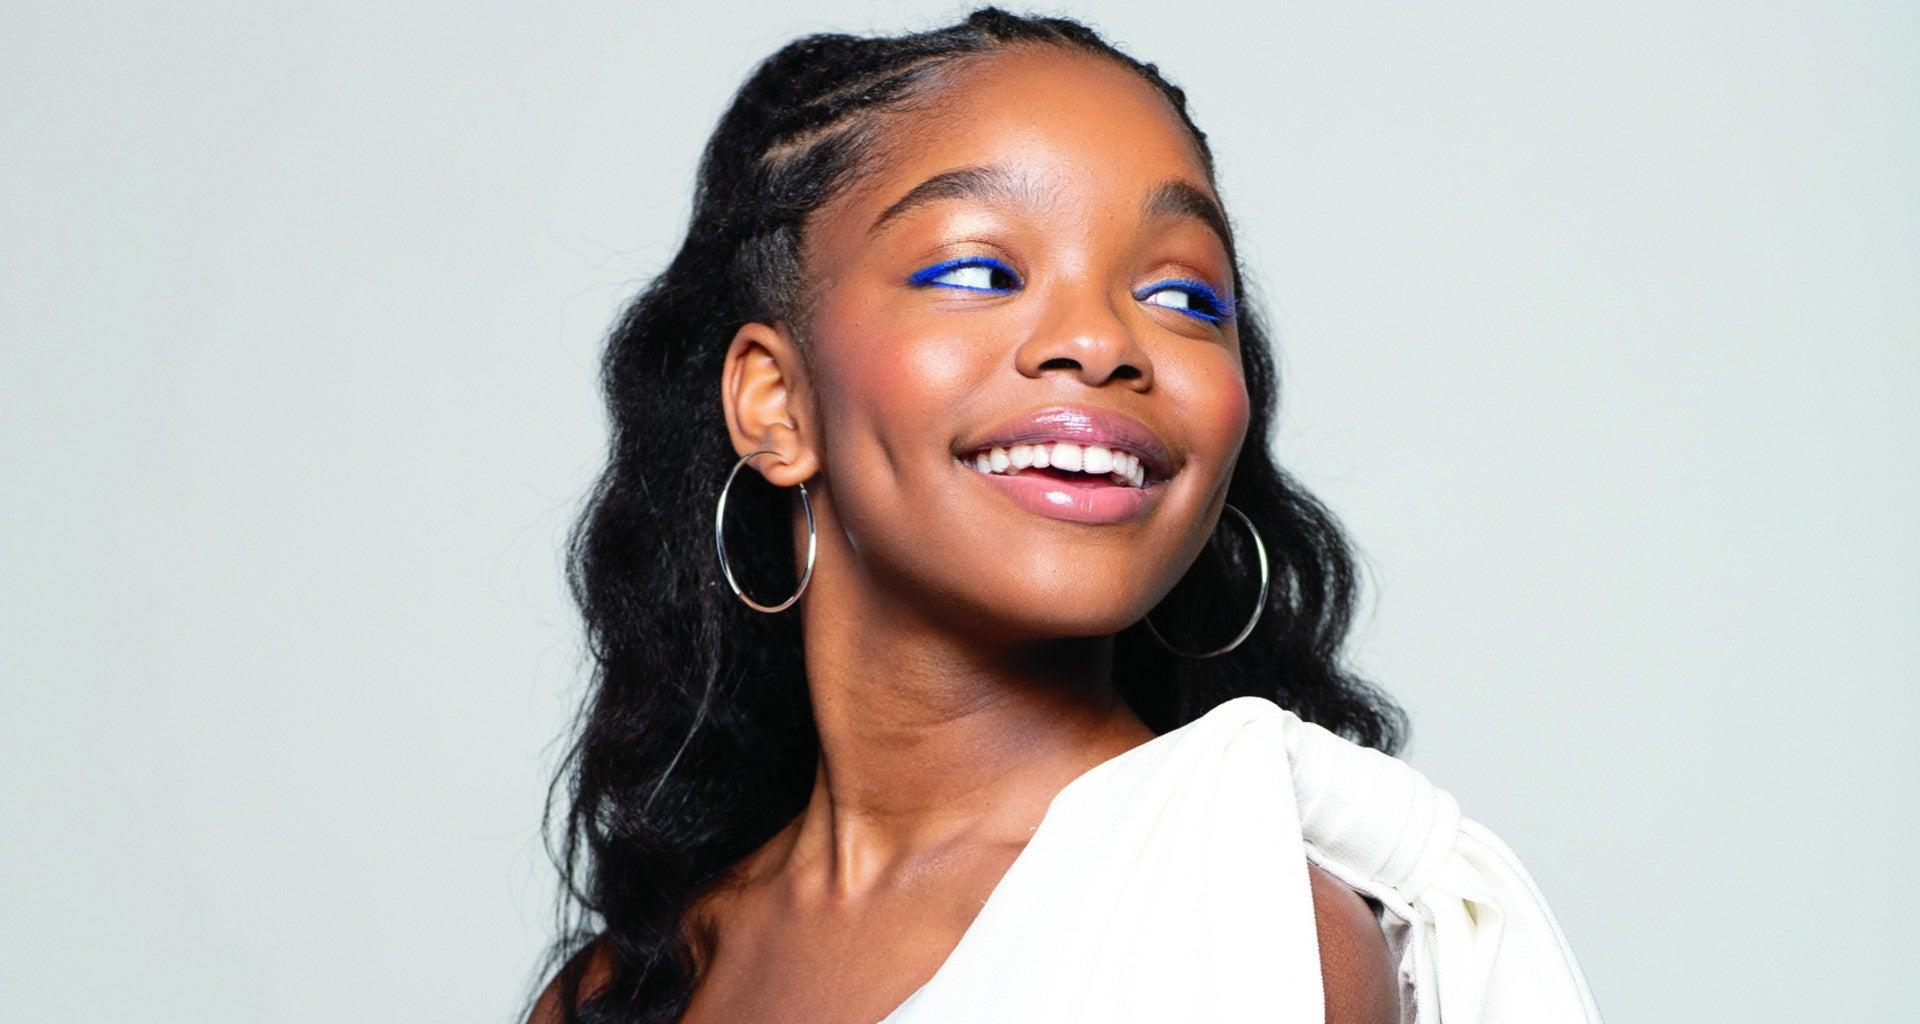 Marsai Martin Mocks Haters In The Best Way After They Criticize The 15-Year-Old 'Black-ish' Actress' Teeth And Hair - See Her Iconic Video Response!